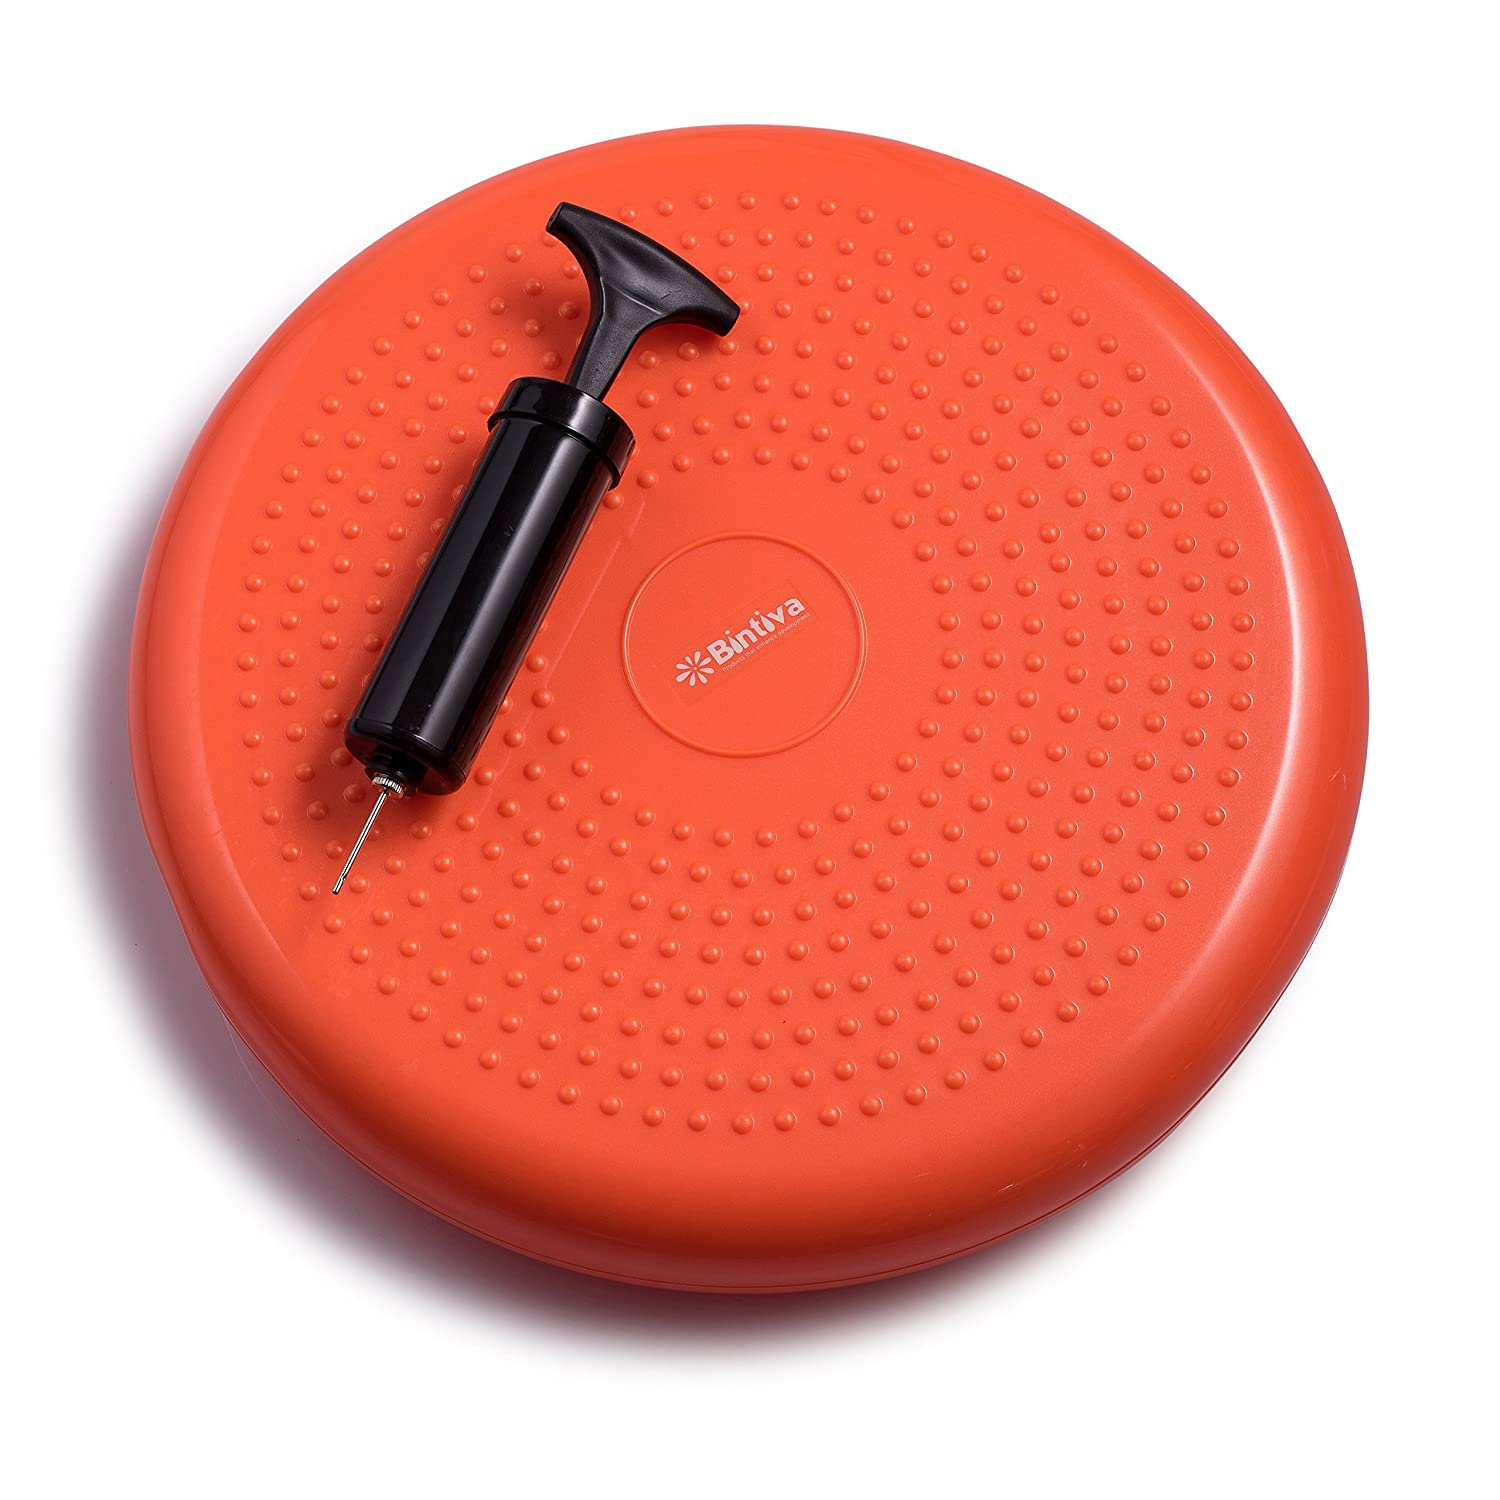 Including Free Pump//Exercise Fitness Core Balance Disc Including Free Pump bintiva Inflated Stability Wobble Cushion 13 inches 33 cm diameter Exercise Fitness Core Balance Disc Blue size